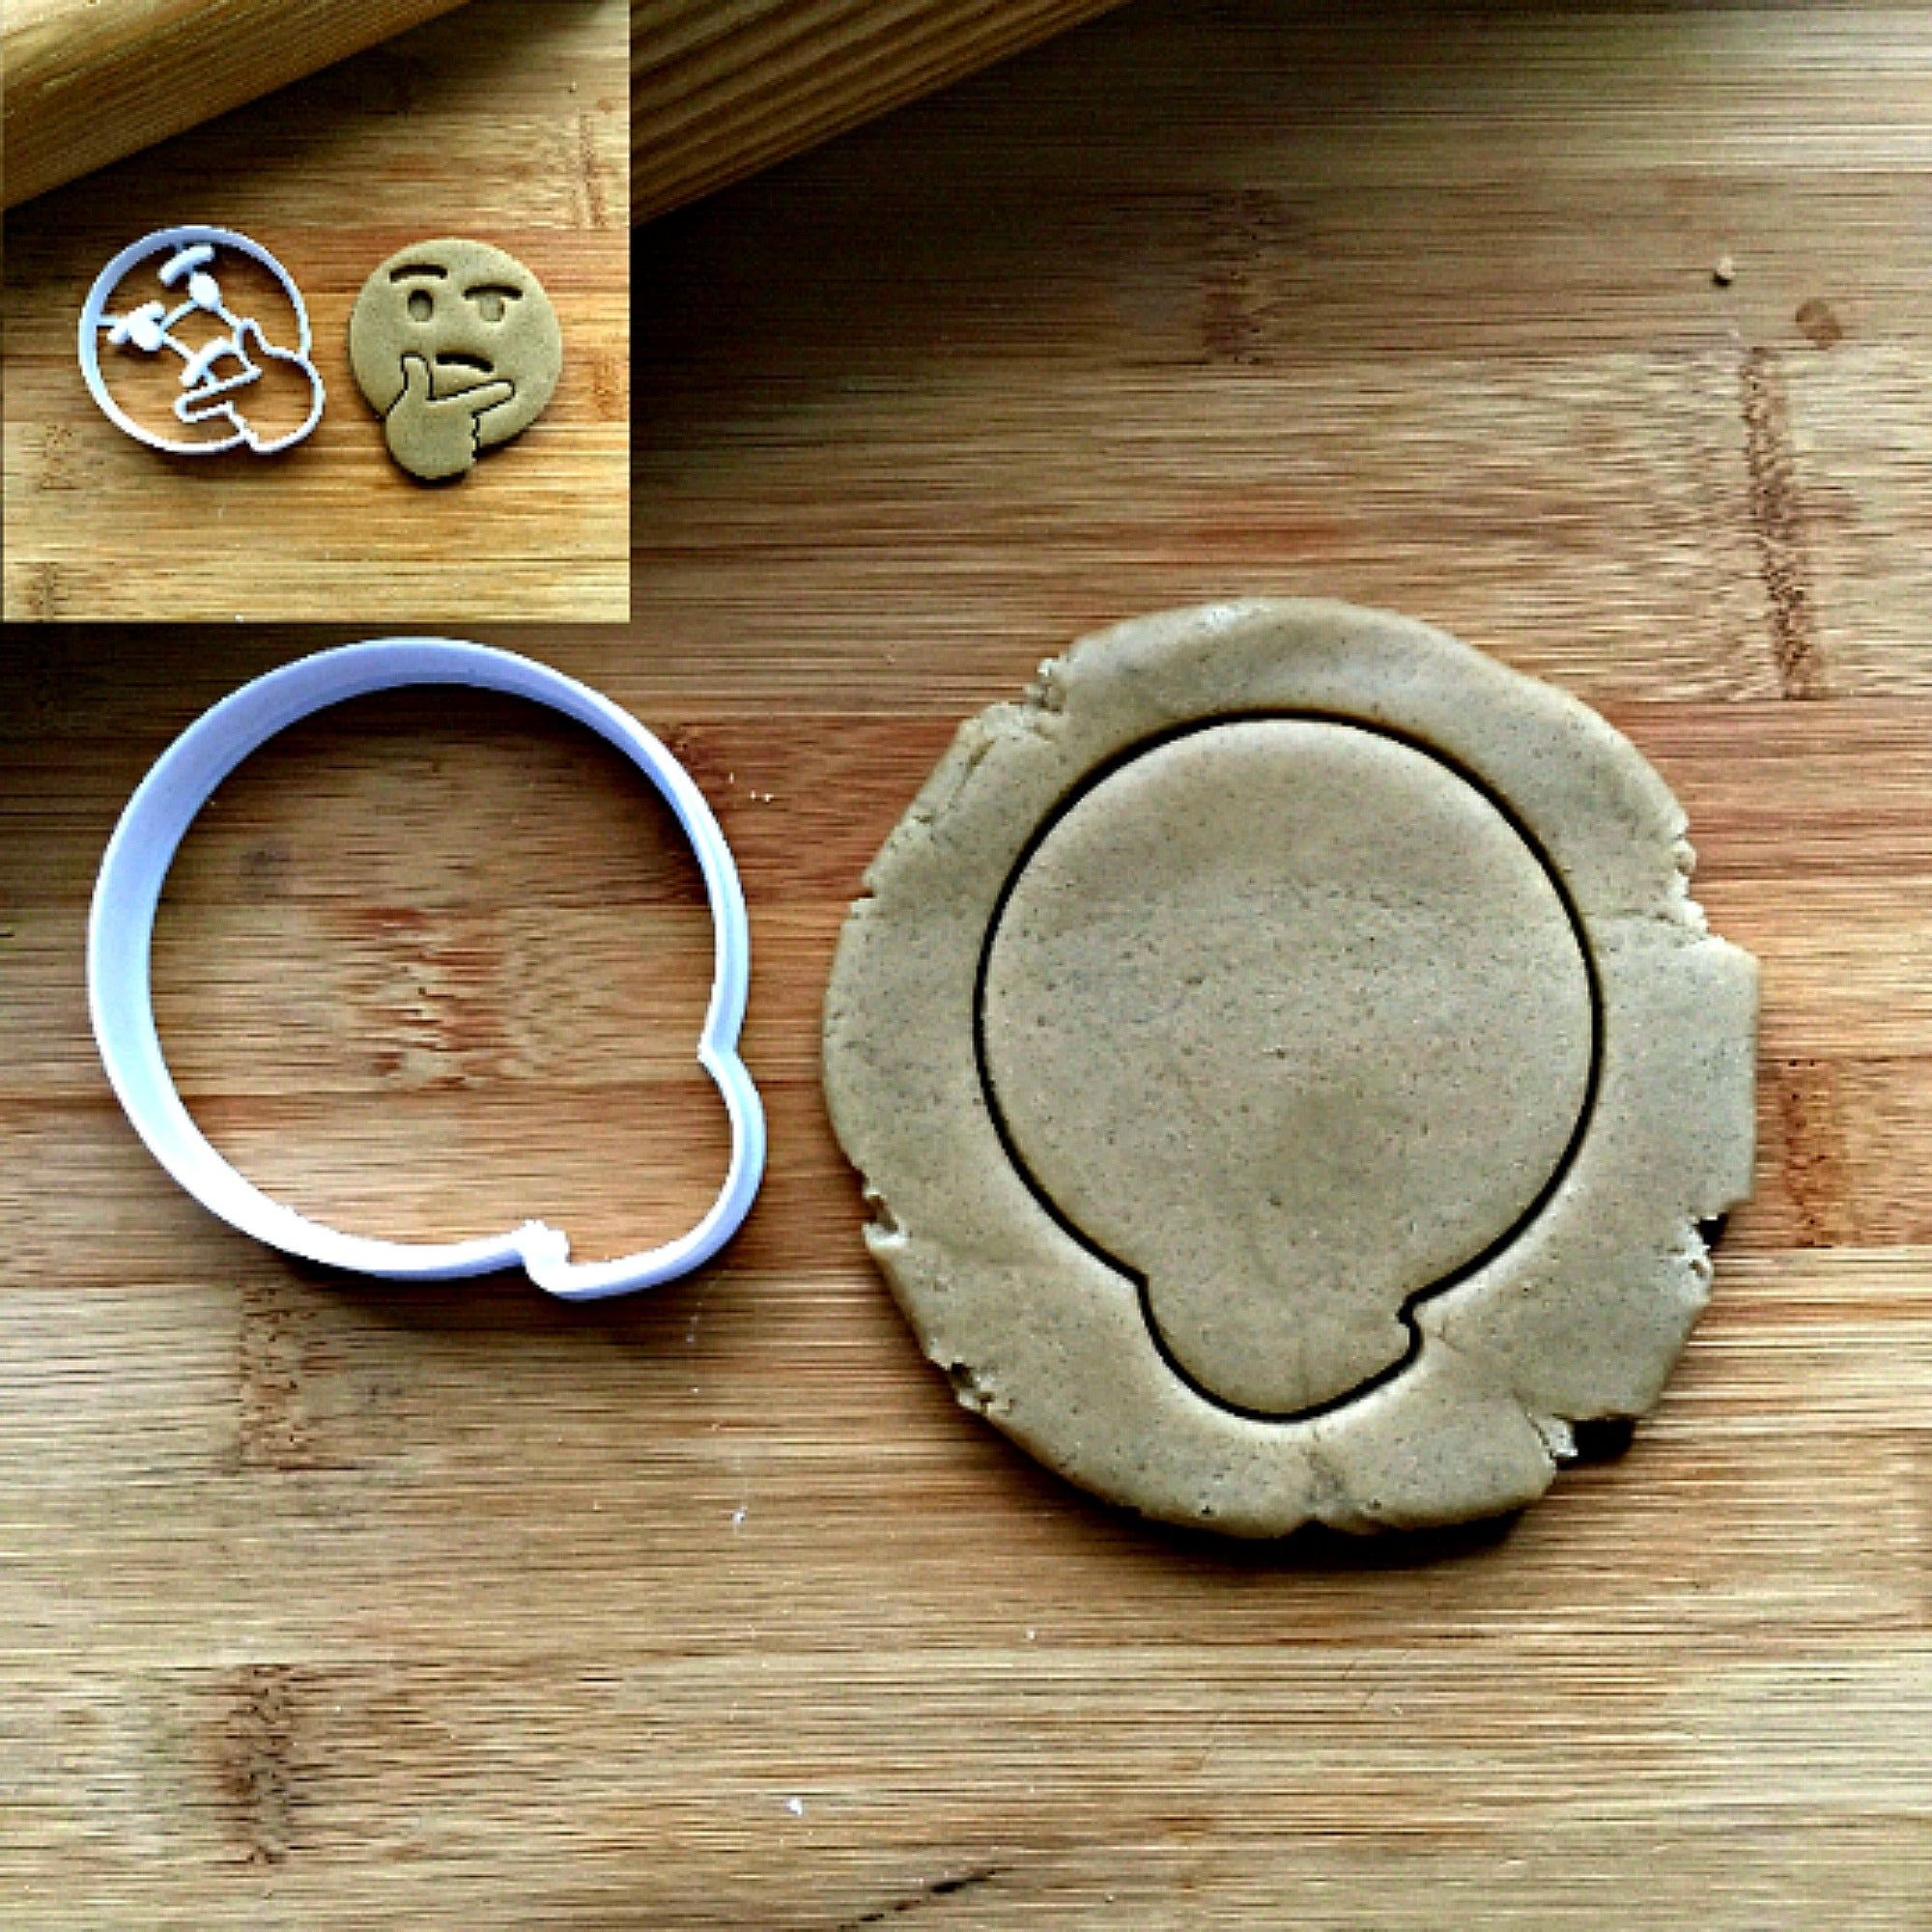 Think Emoji Cookie Cutter/Dishwasher Safe